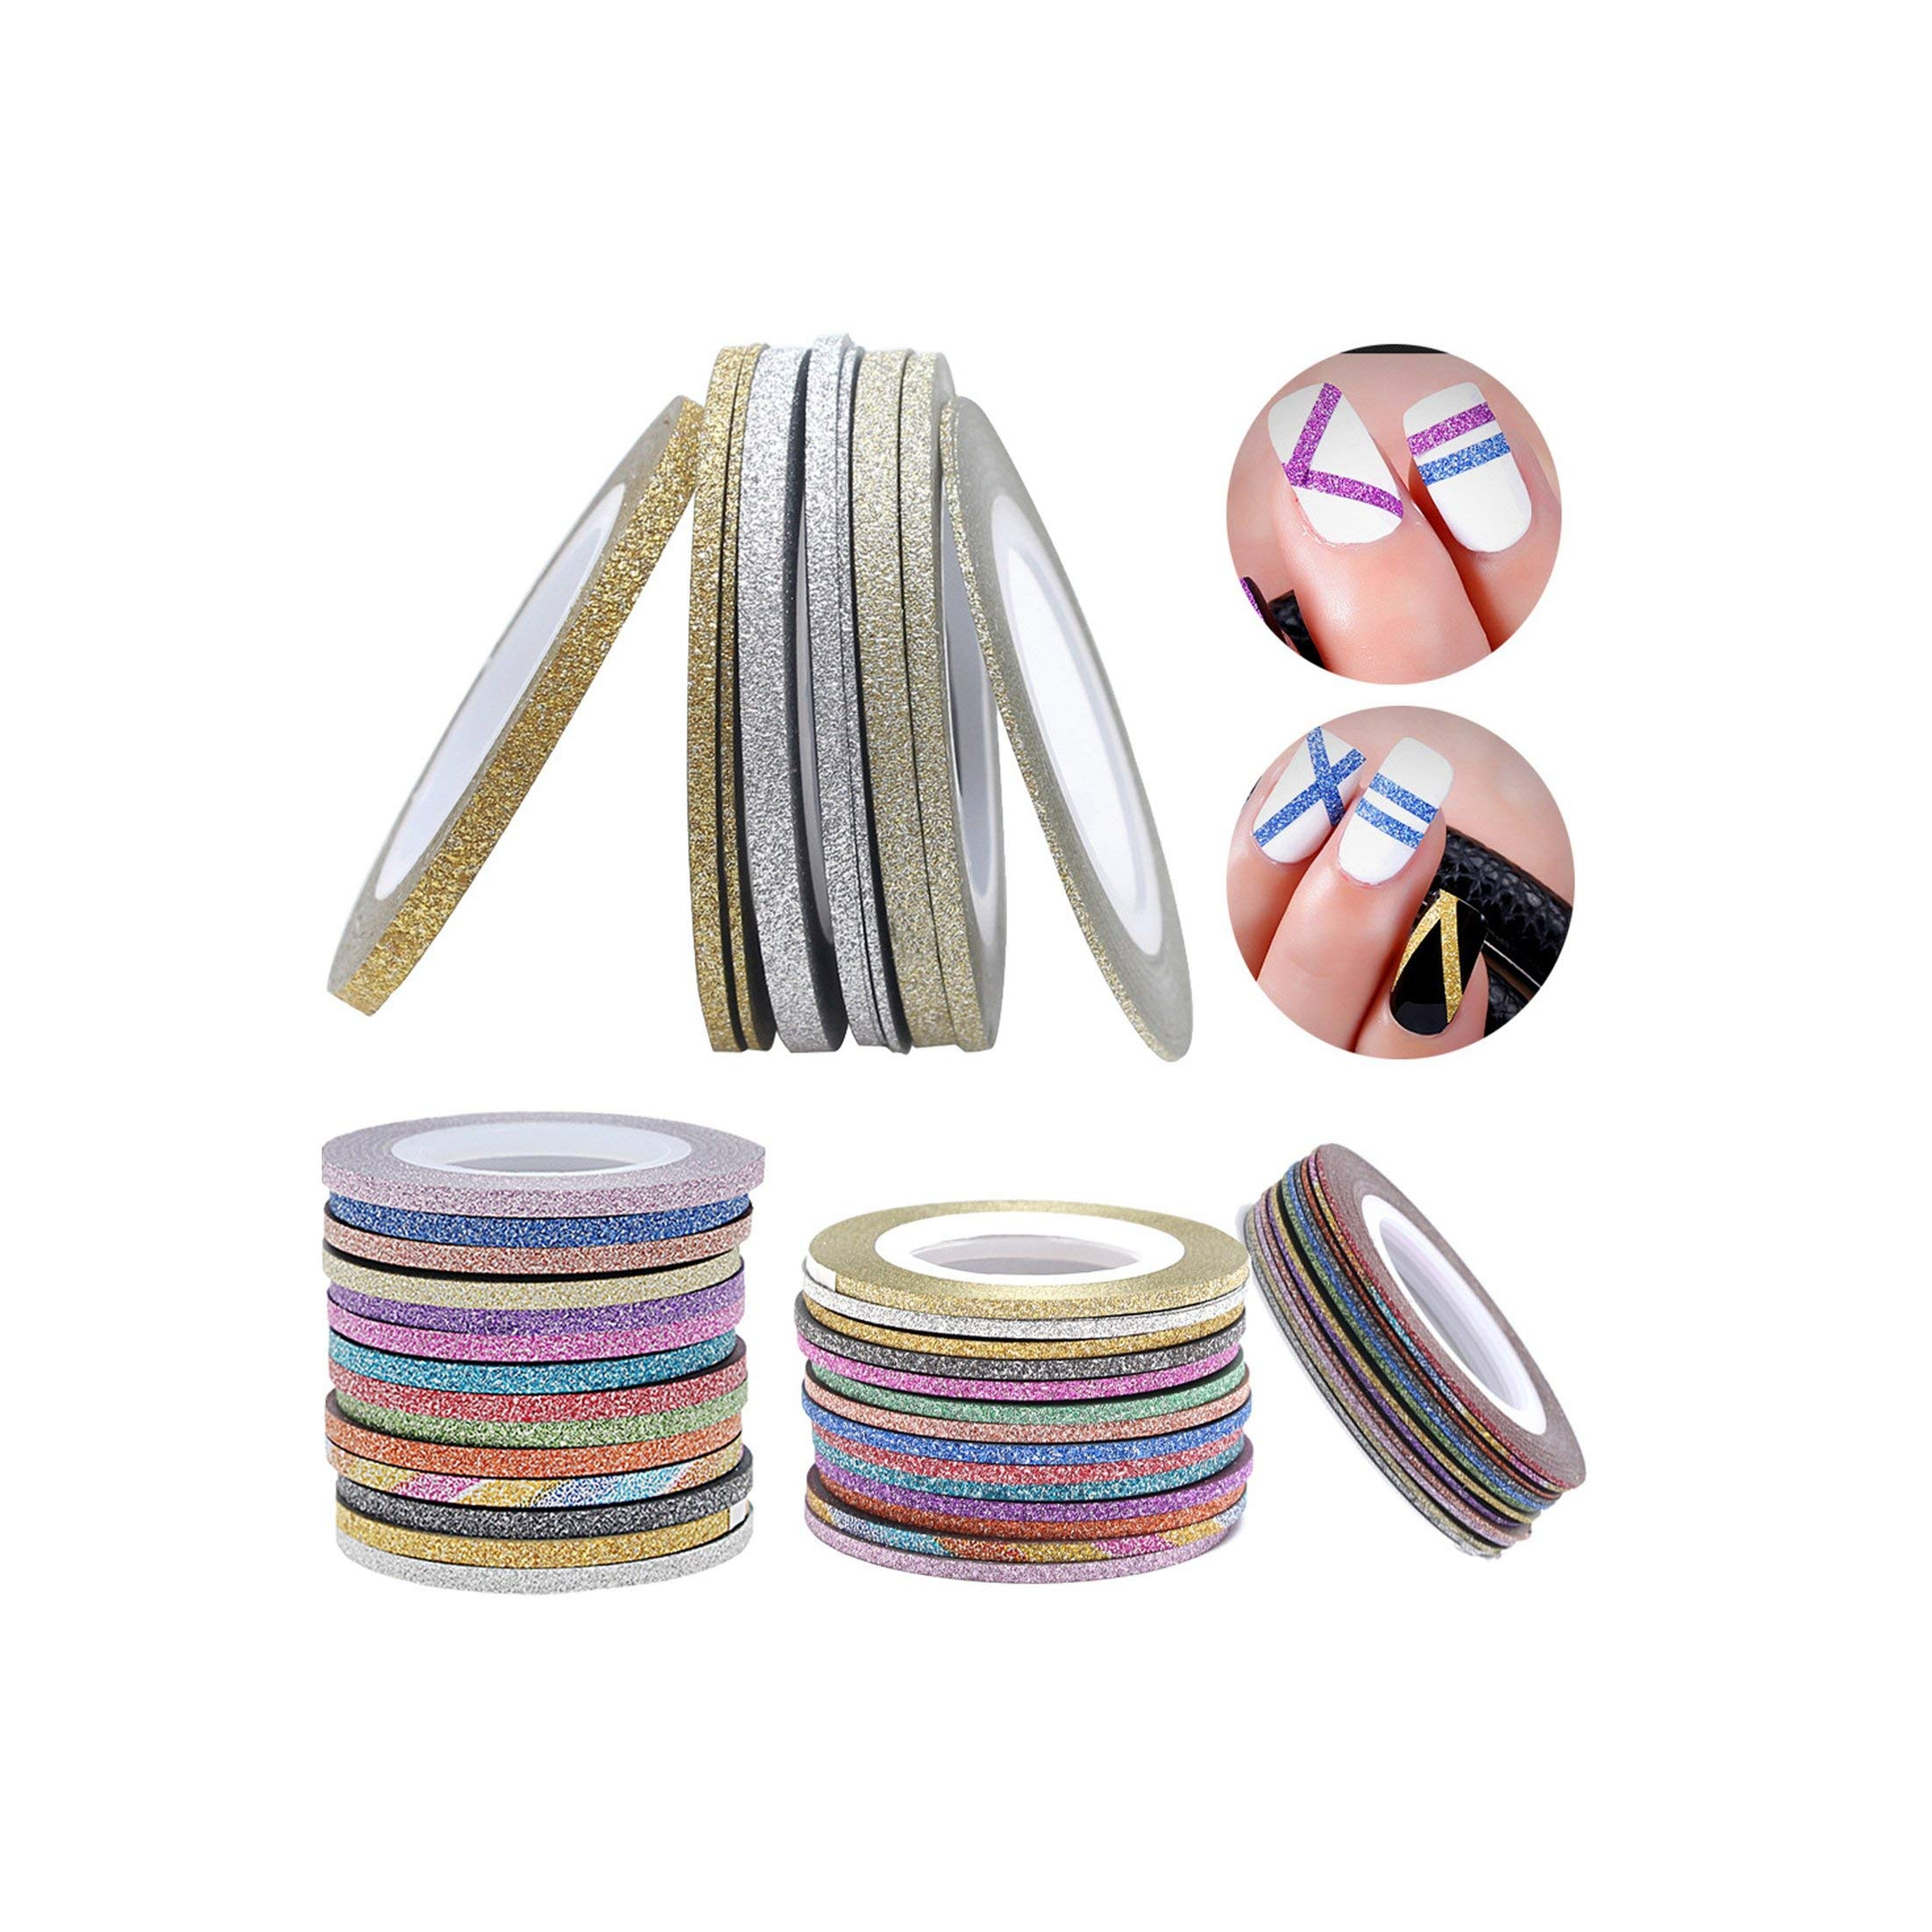 2000Pcs Glitter Nail Art Striping Tape Nail Line Sticker 1Mm 2Mm 3Mm Matte Metallic Yarn Line Strip Tape,3Mm by Mango-ice